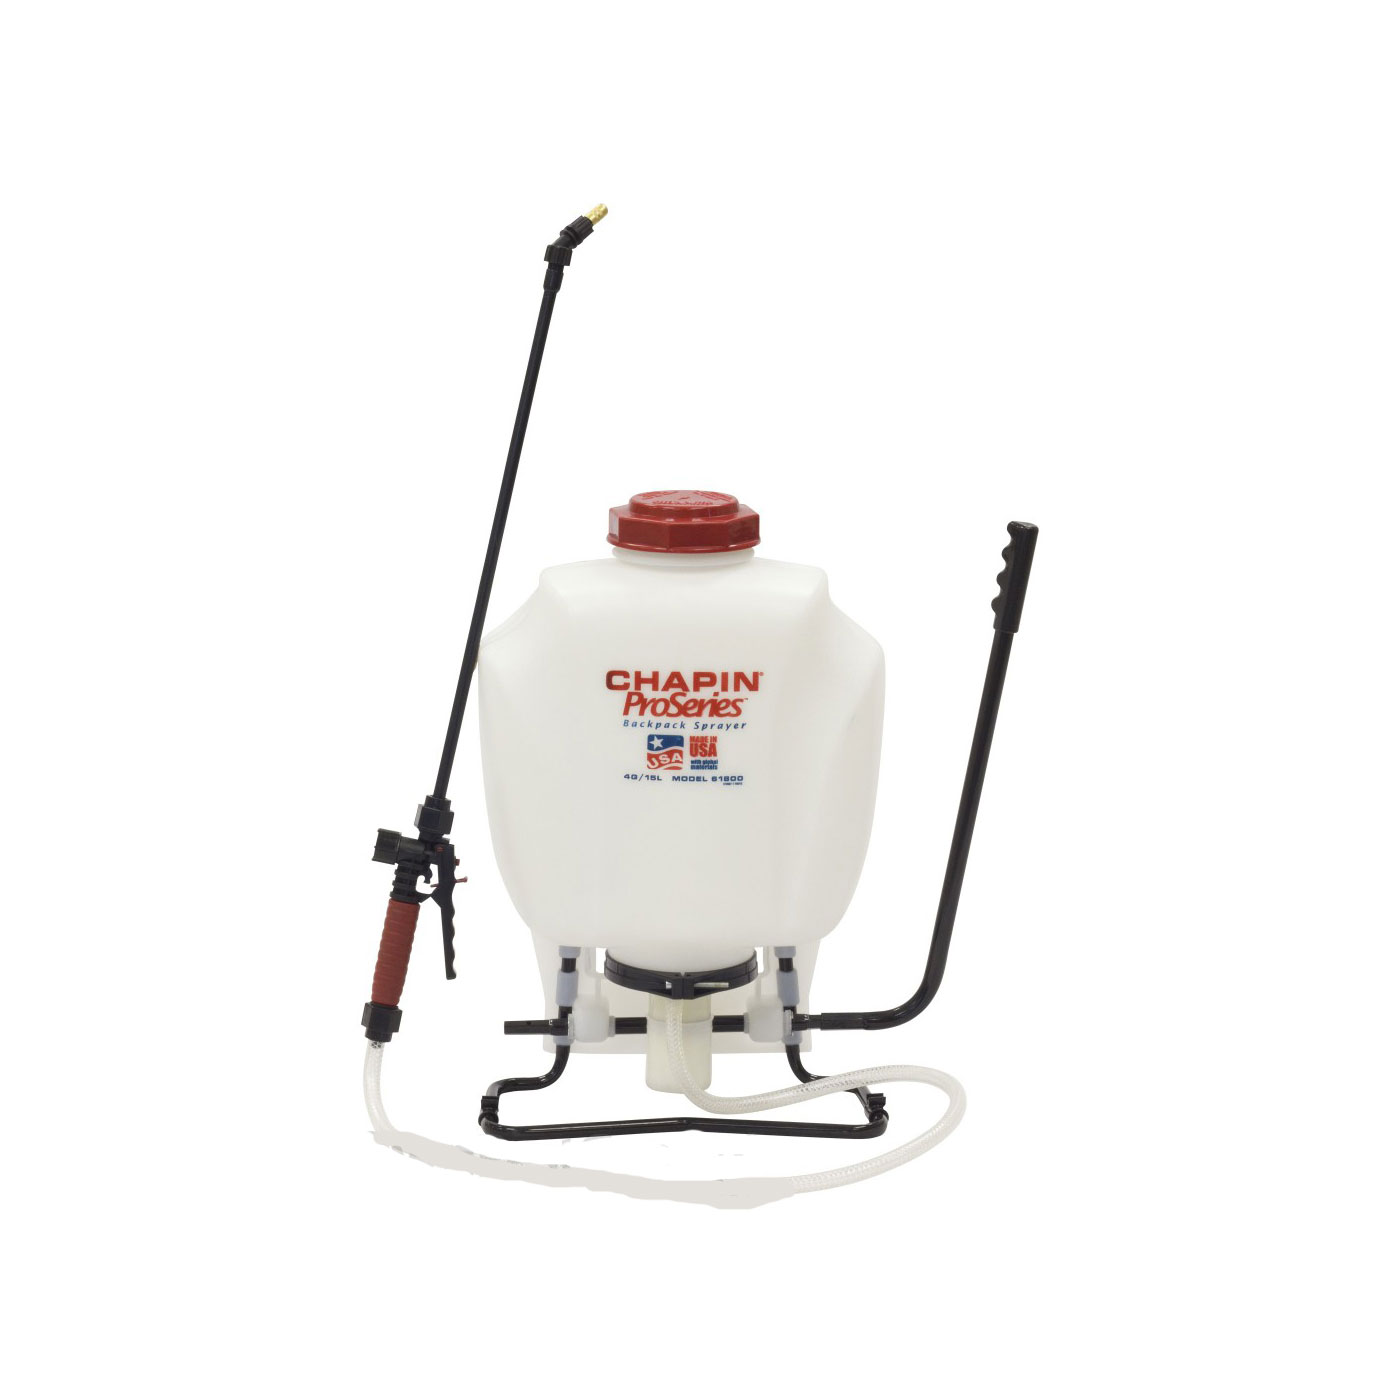 ProSeries Backpack Sprayer 4G/15.1L